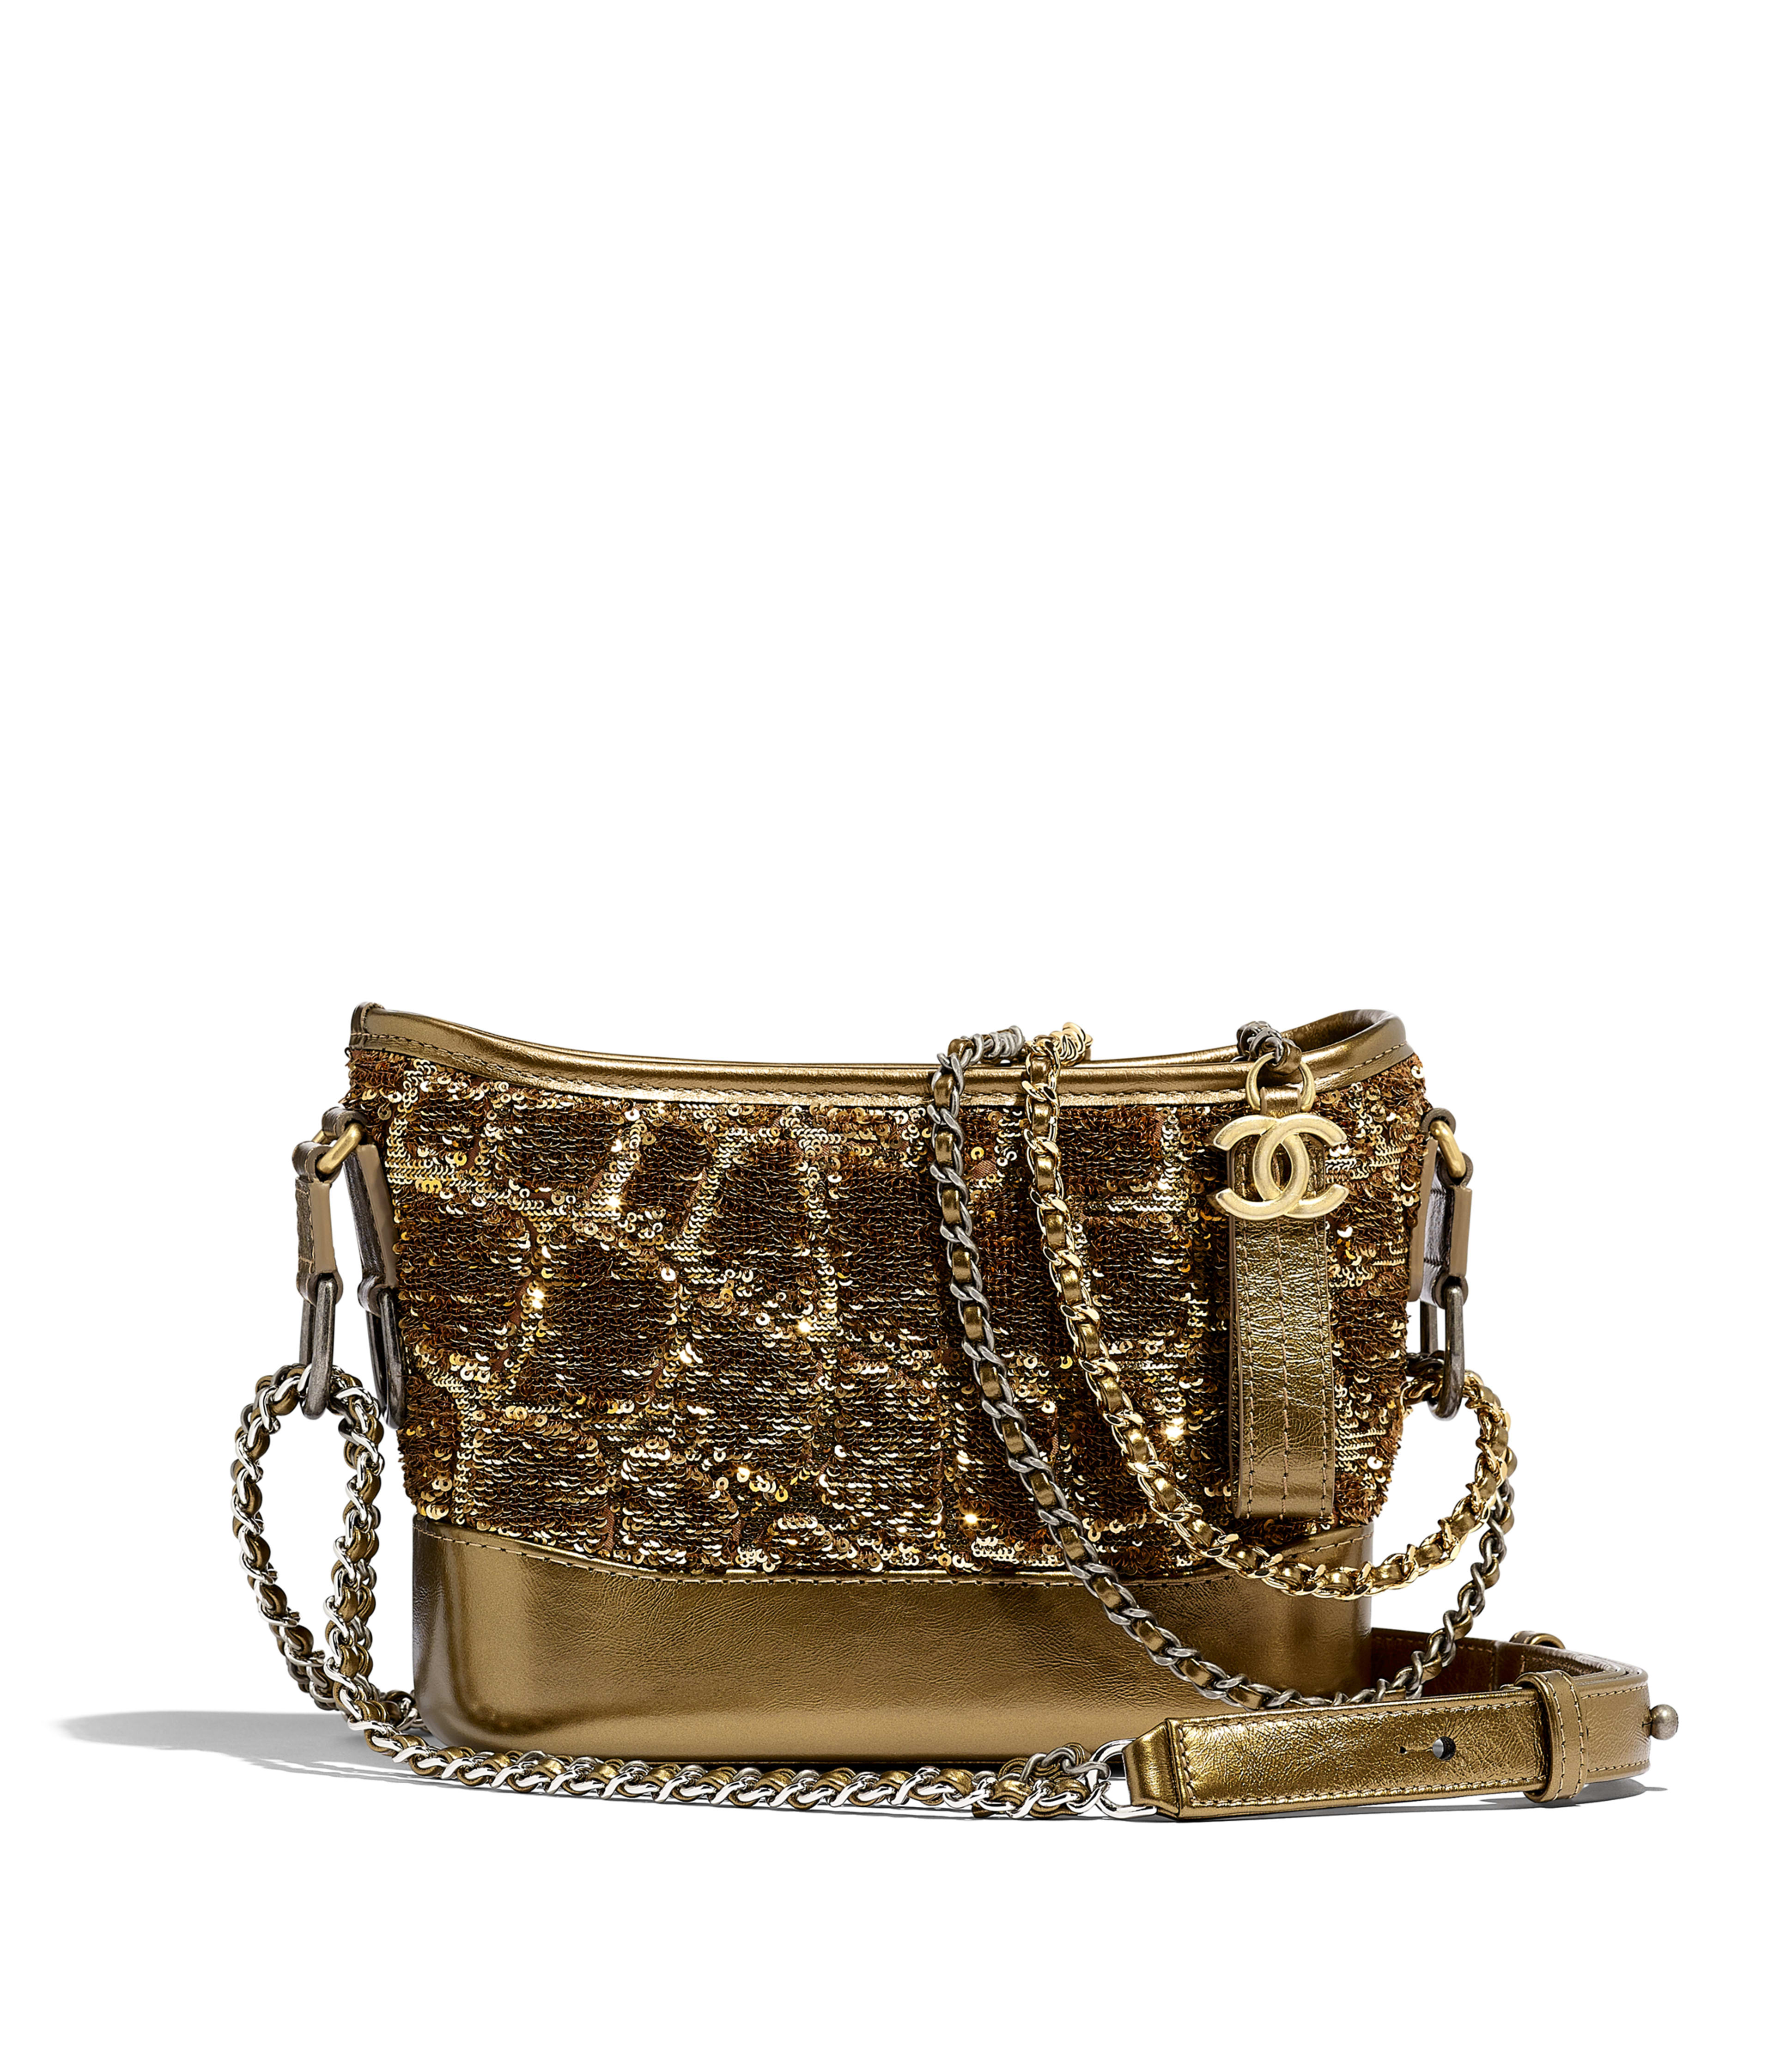 3db85b76d644 CHANEL'S GABRIELLE Small Hobo Bag Sequins, Calfksin, Silver-Tone &  Gold-Tone Metal, Gold & Copper Ref. A91810B00883N4739